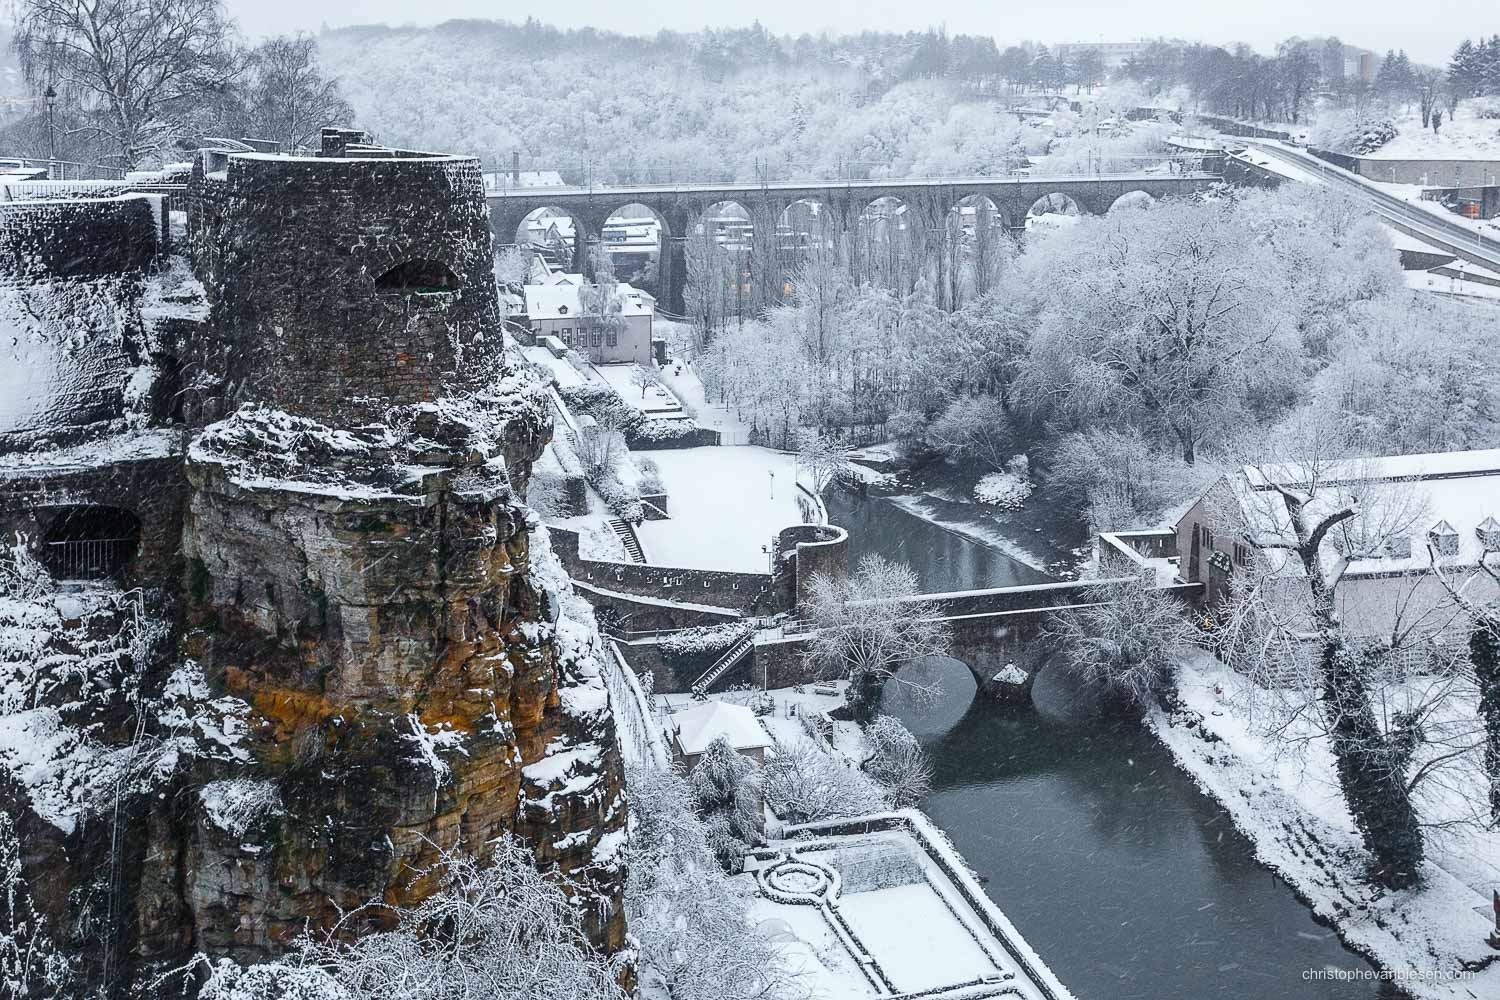 Winter in Luxembourg - Luxembourg's Rocher du Bock is one of the best preserved parts of the ancient fortress of the old city - Stronghold